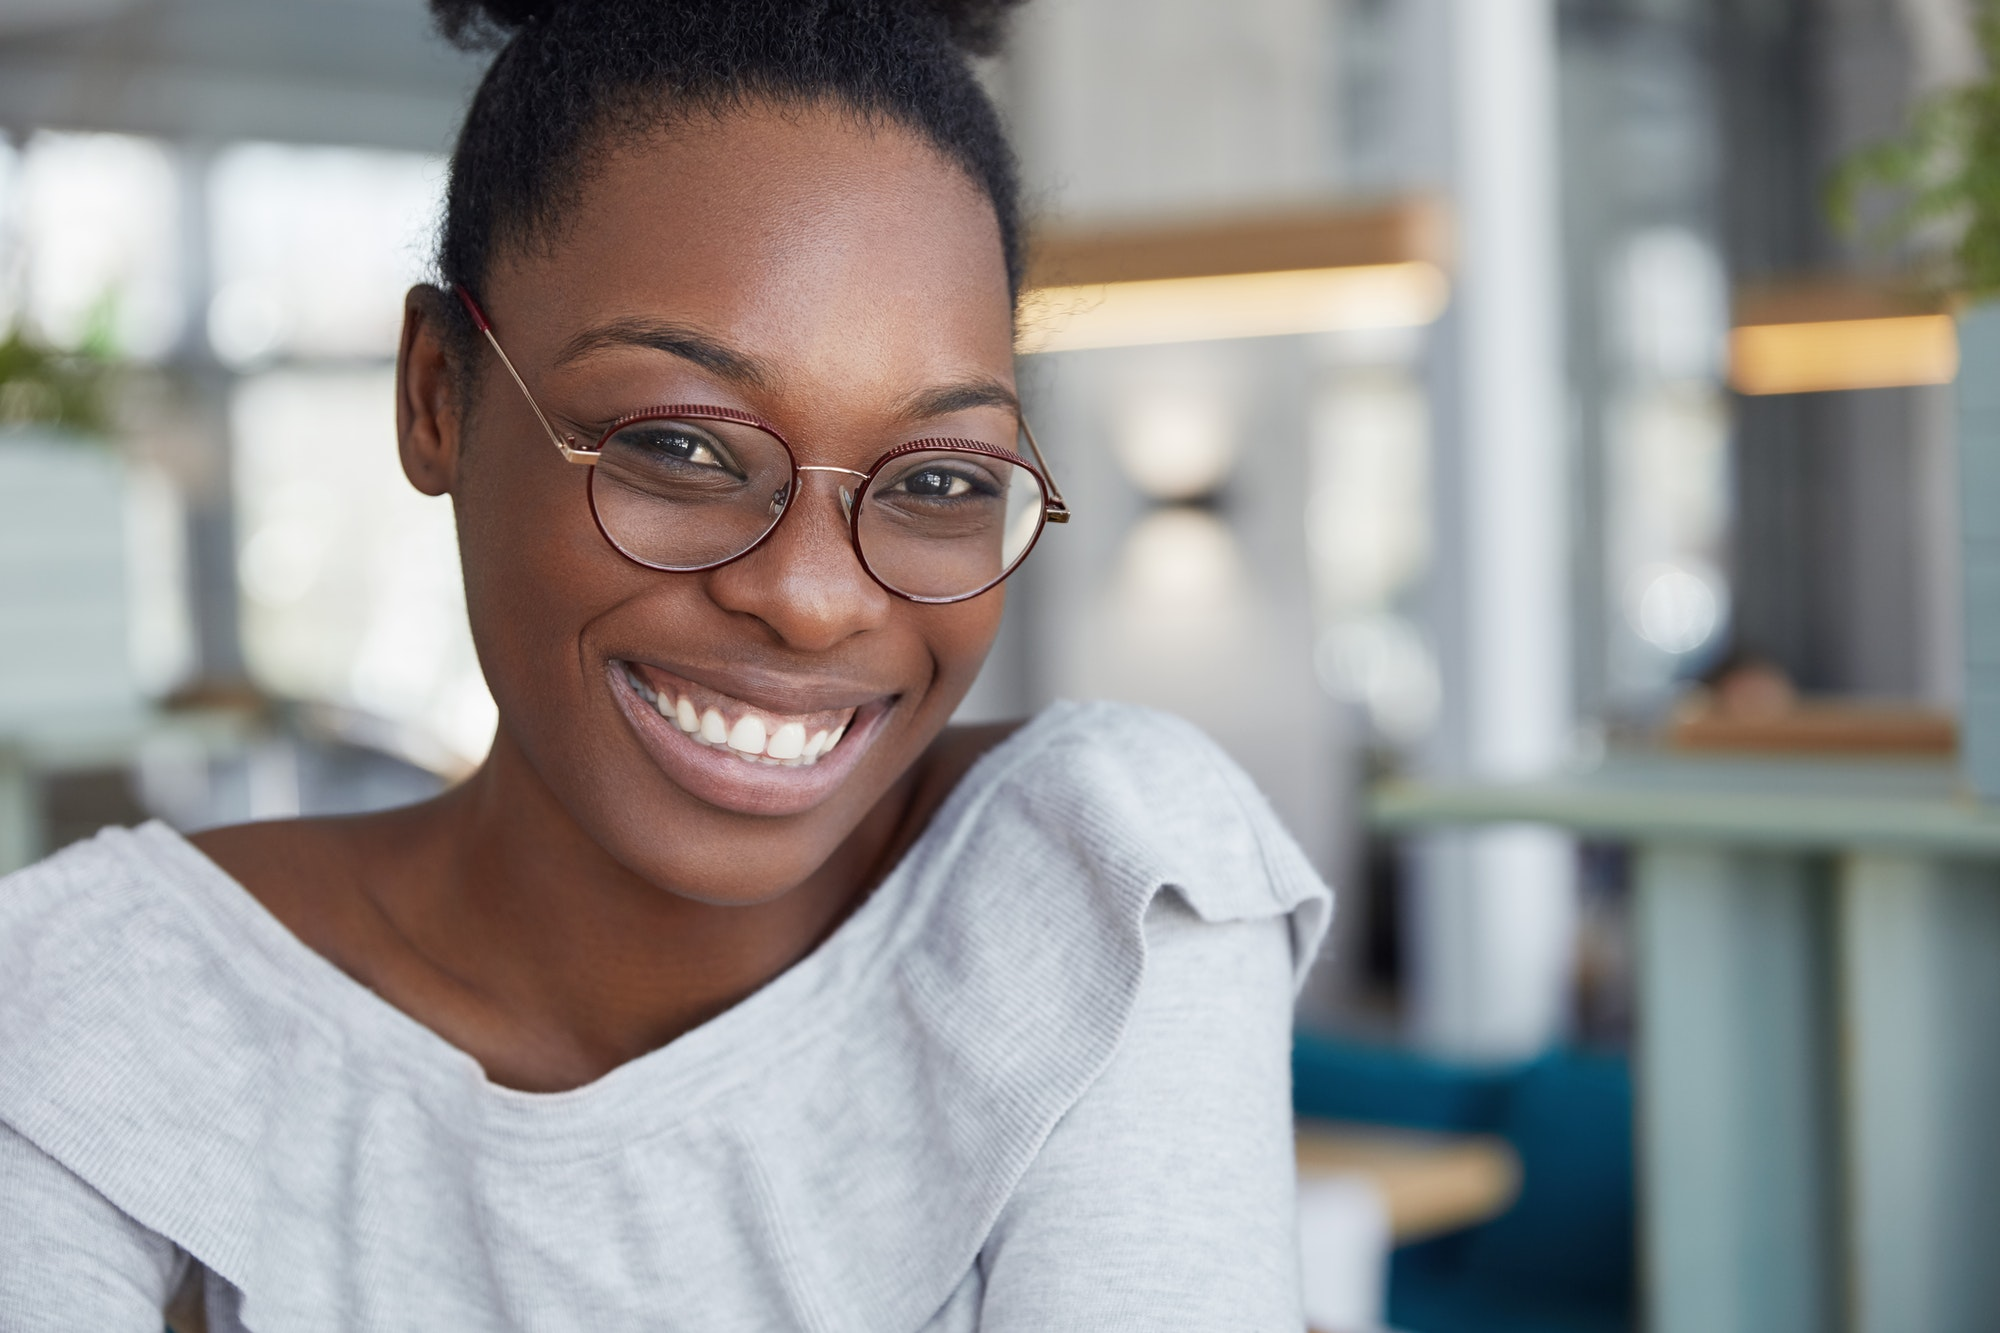 Best LinkedIn profile and cover photos: headshot of smiling Black female in round glasses